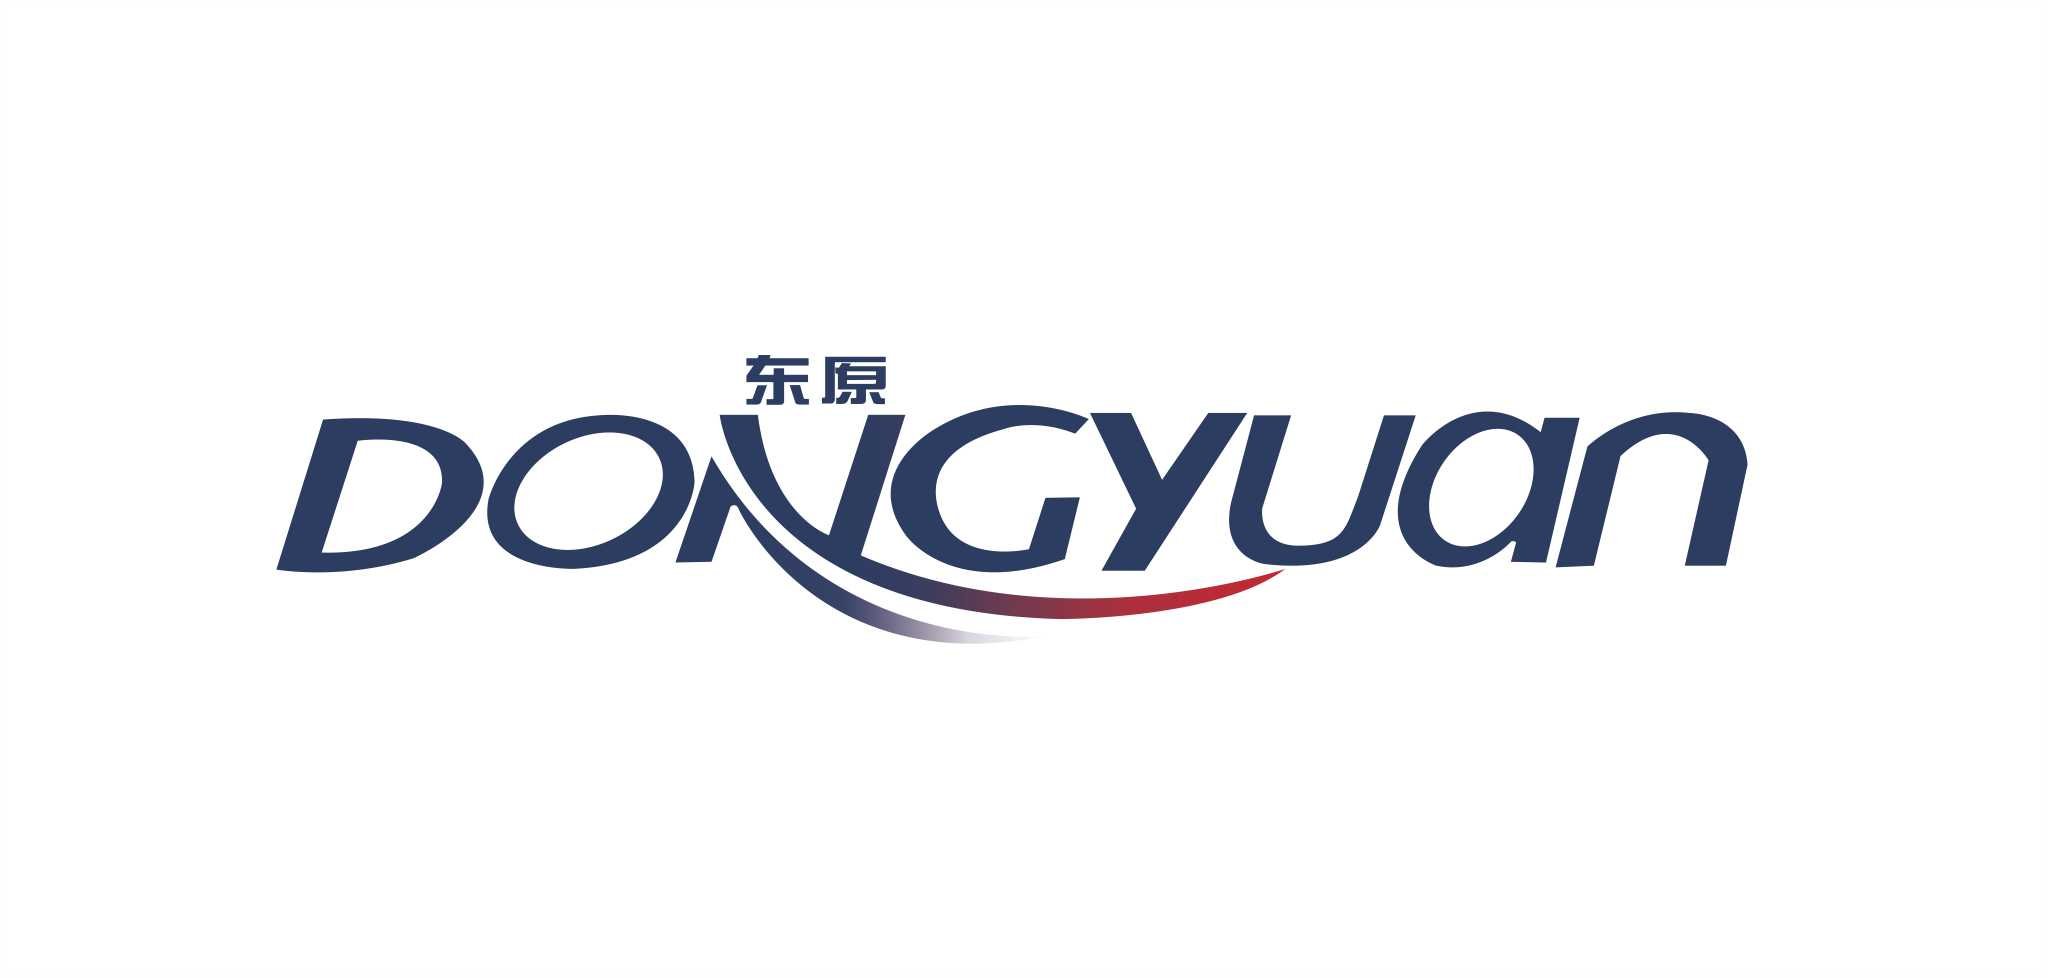 GUANGDONG DONGYUAN KITCHENWARE INDUSTRIAL CO., LTD.